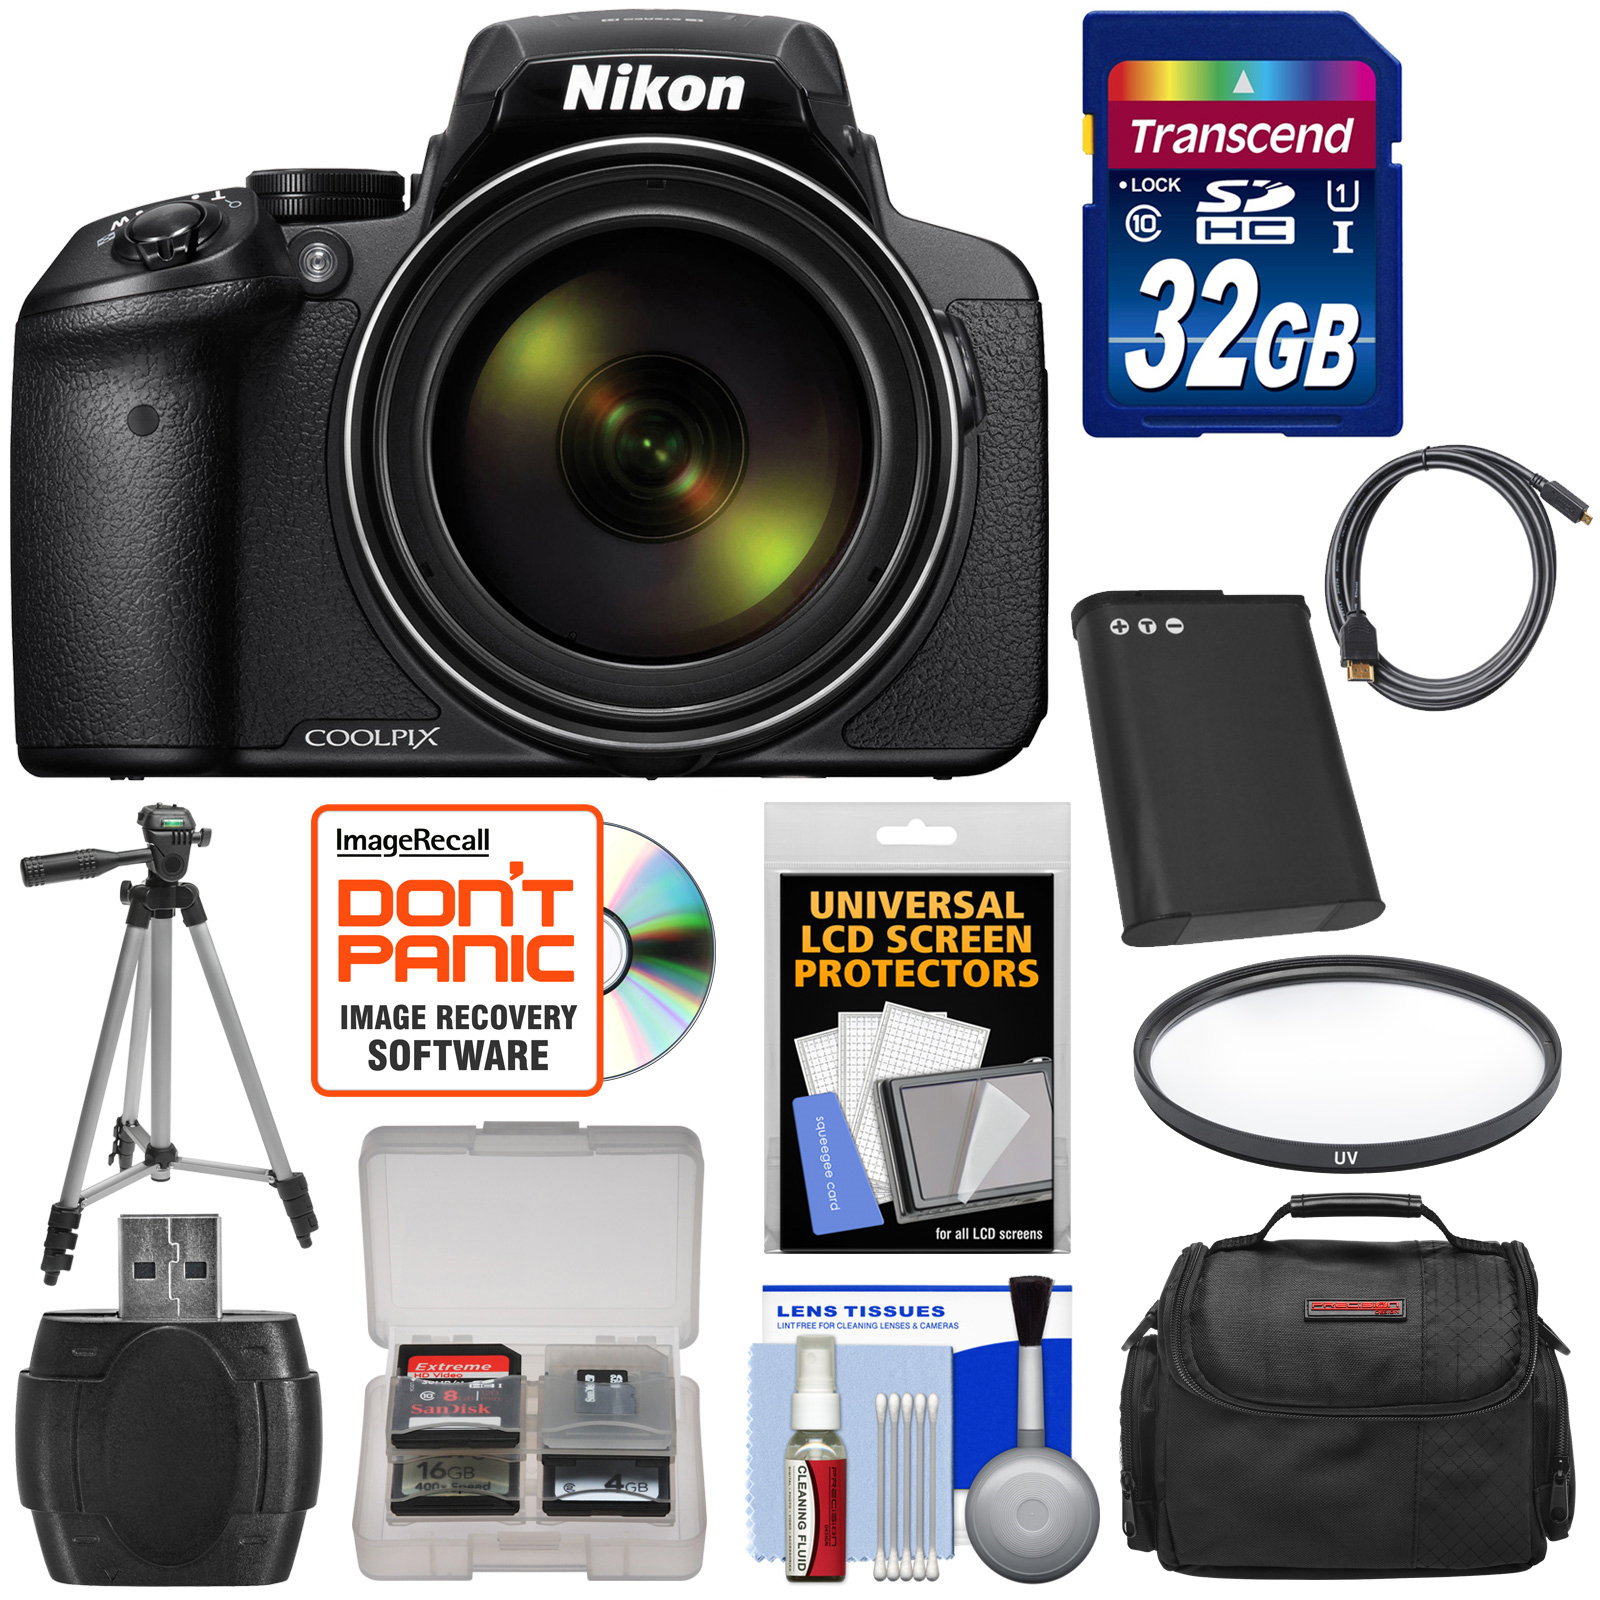 Nikon Coolpix P900 Wi-Fi 83x Zoom Digital Camera with 32GB Card + Battery + Case + Tripod + Filter + HDMI... by Nikon